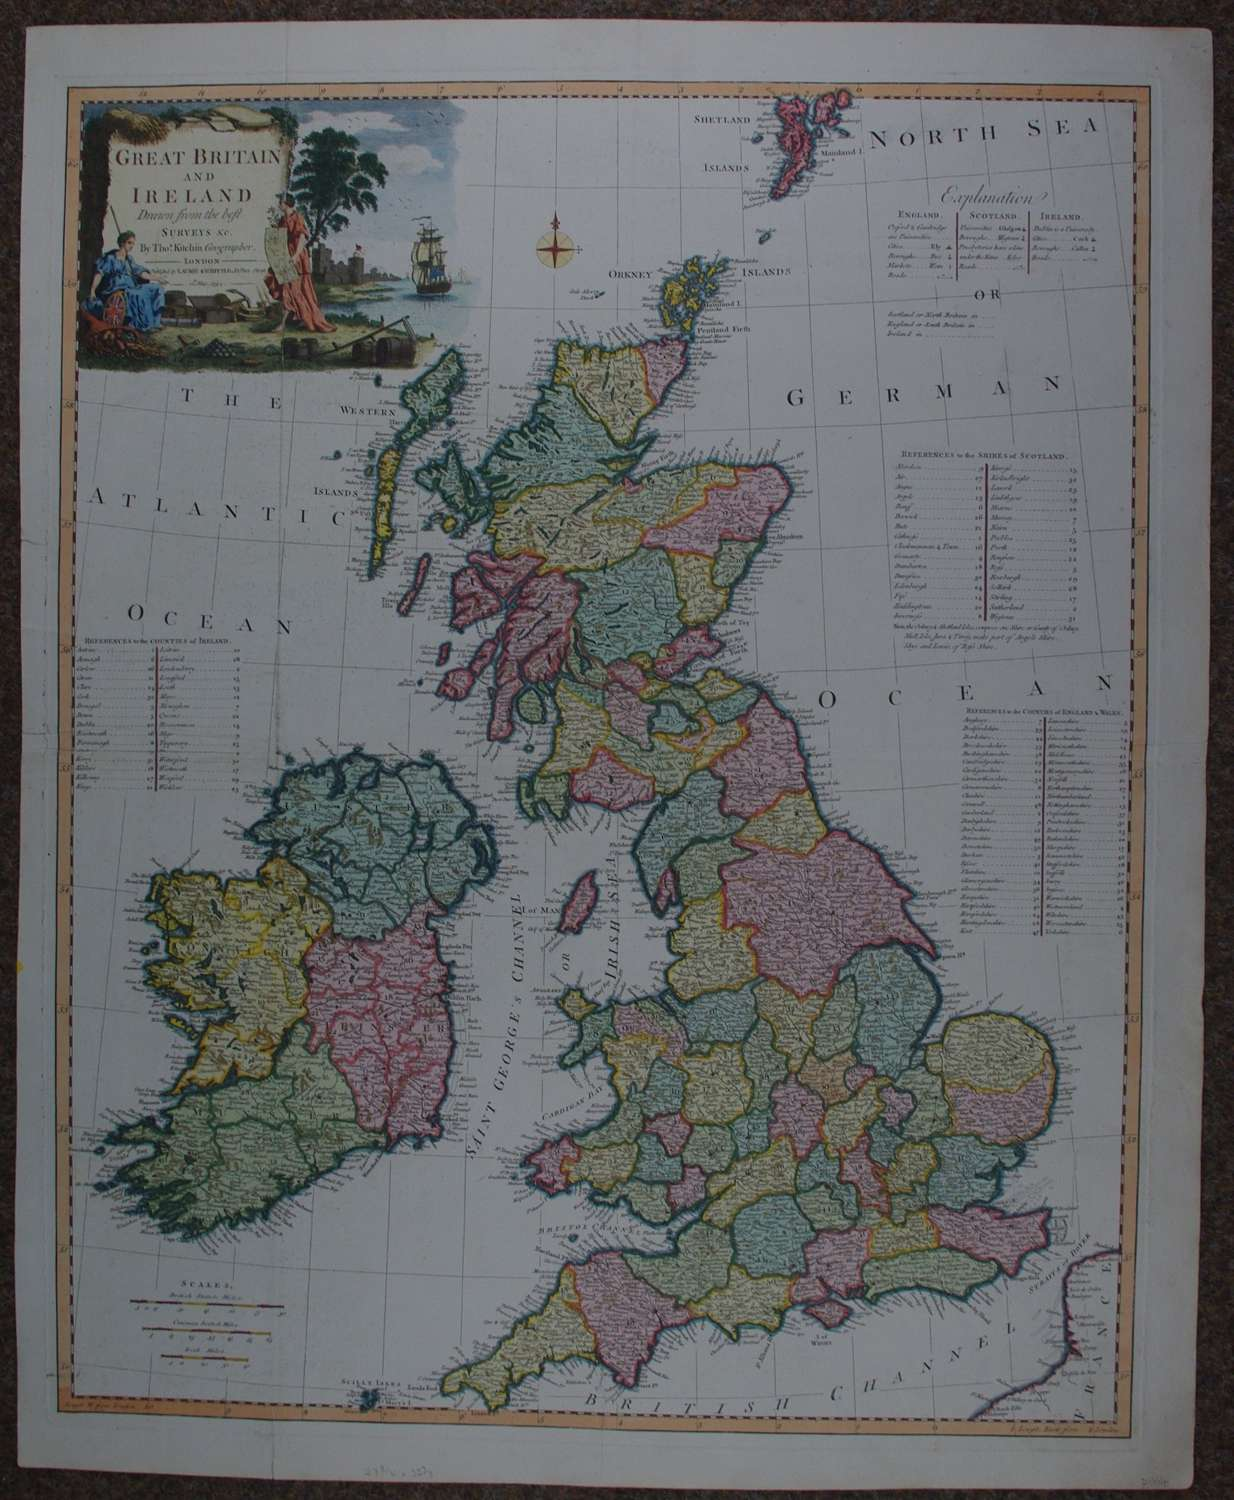 Great Britain and Ireland by Thomas Kitchen